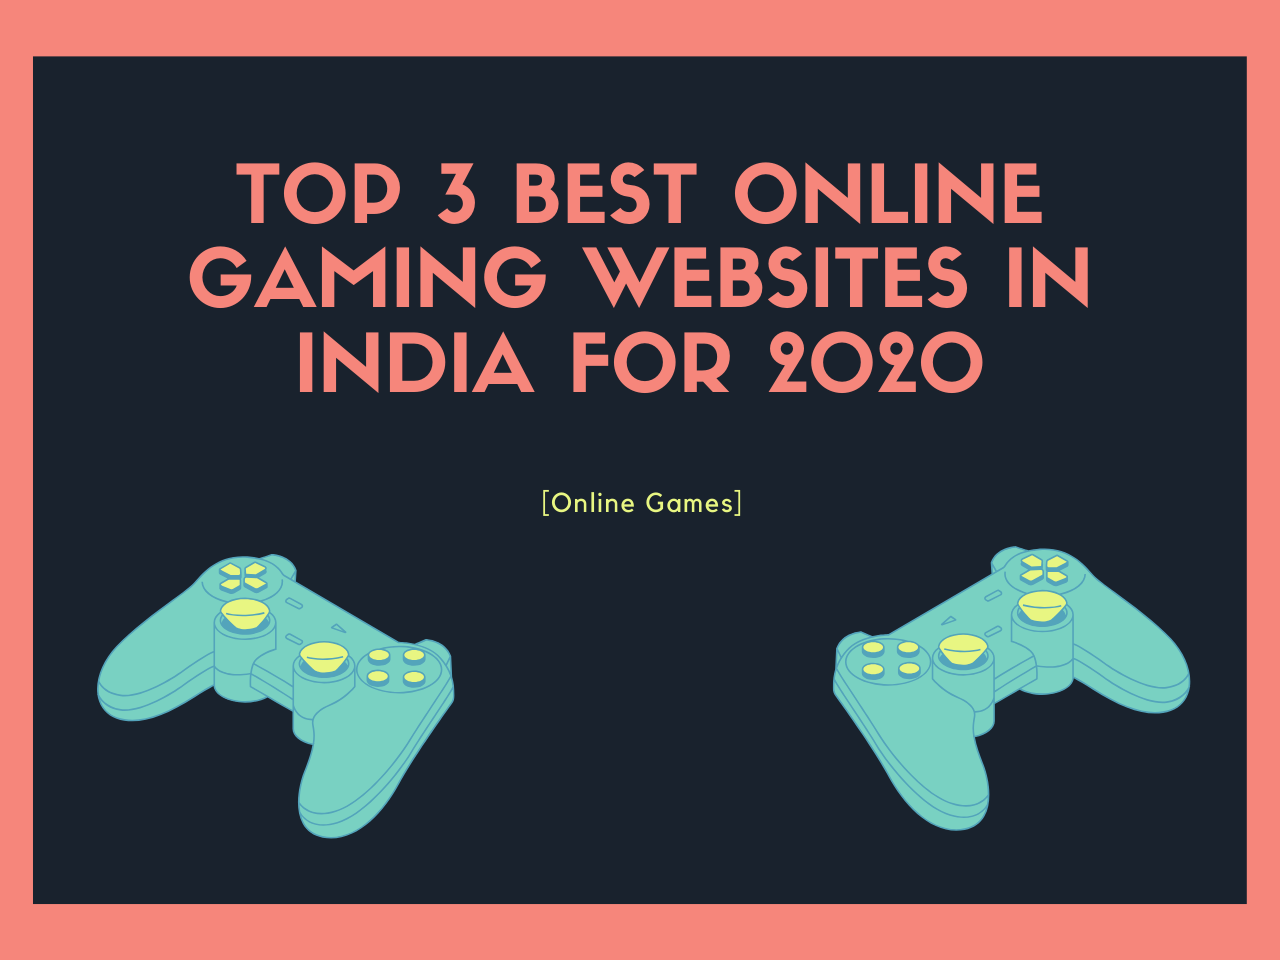 Top 3 Best Online Gaming Websites In India for 2020